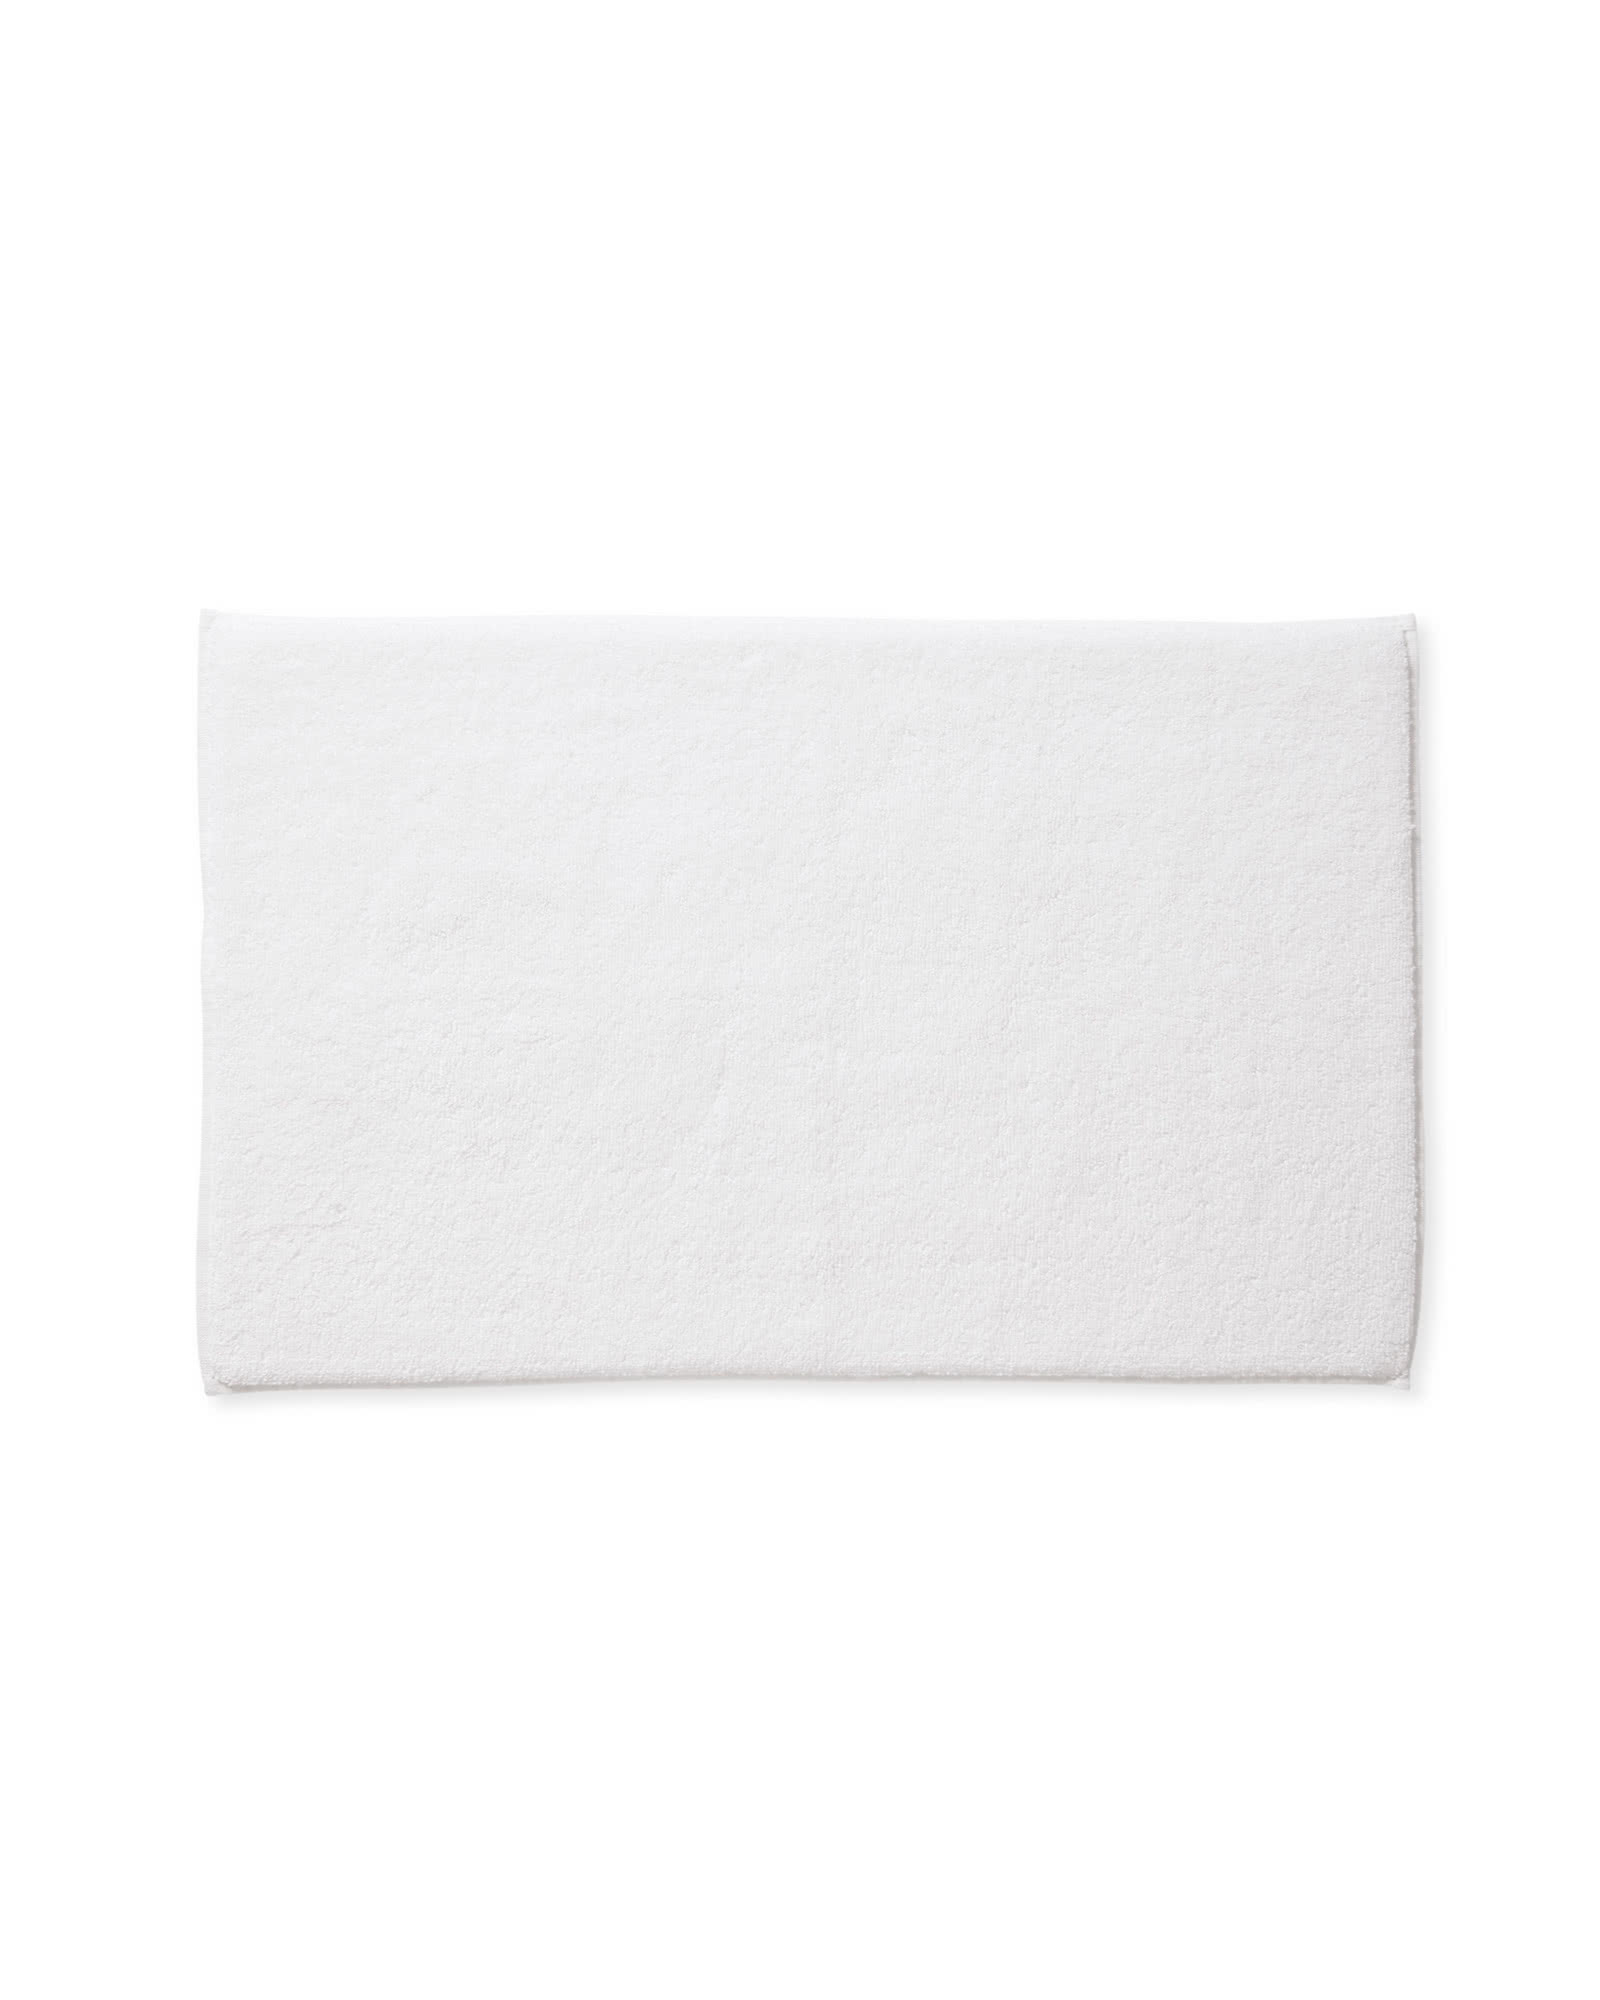 Kenwood Bath Mat, White